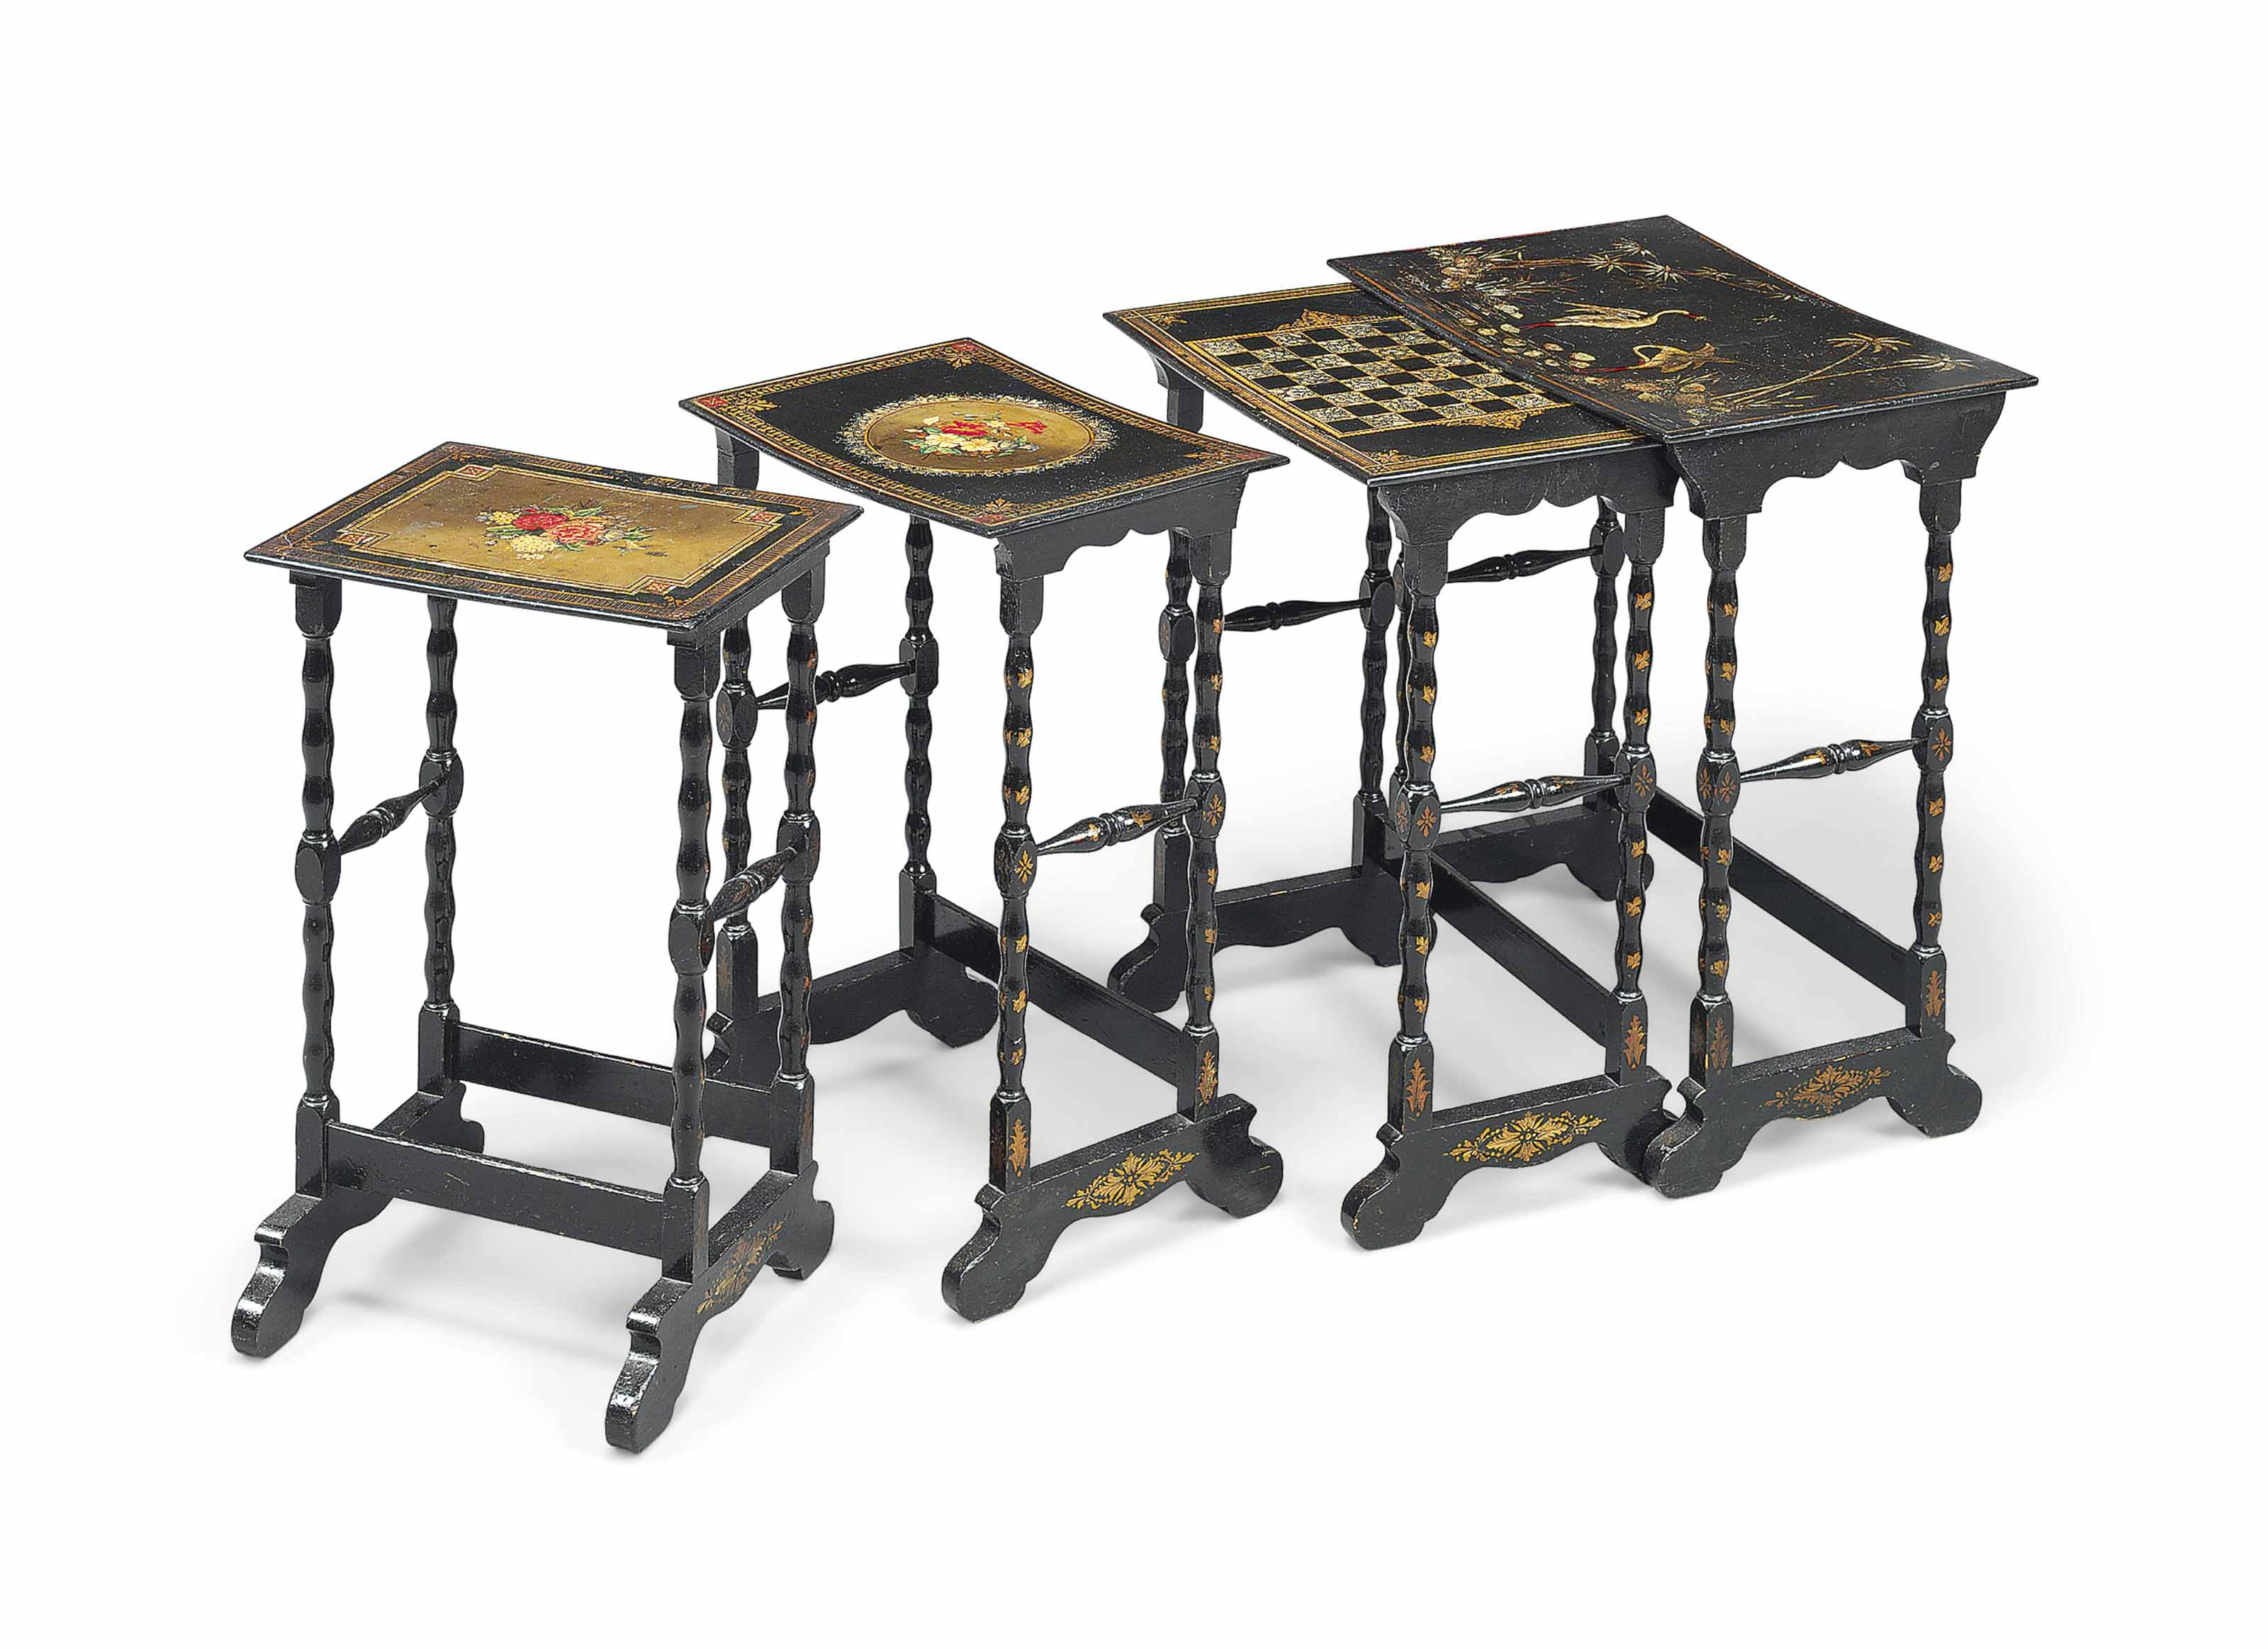 A SET OF FRENCH BLACK AND GILT-JAPANNED AND MOTHER-OF-PEARL INLAID PAPIER MACHE QUARTETTO TABLES